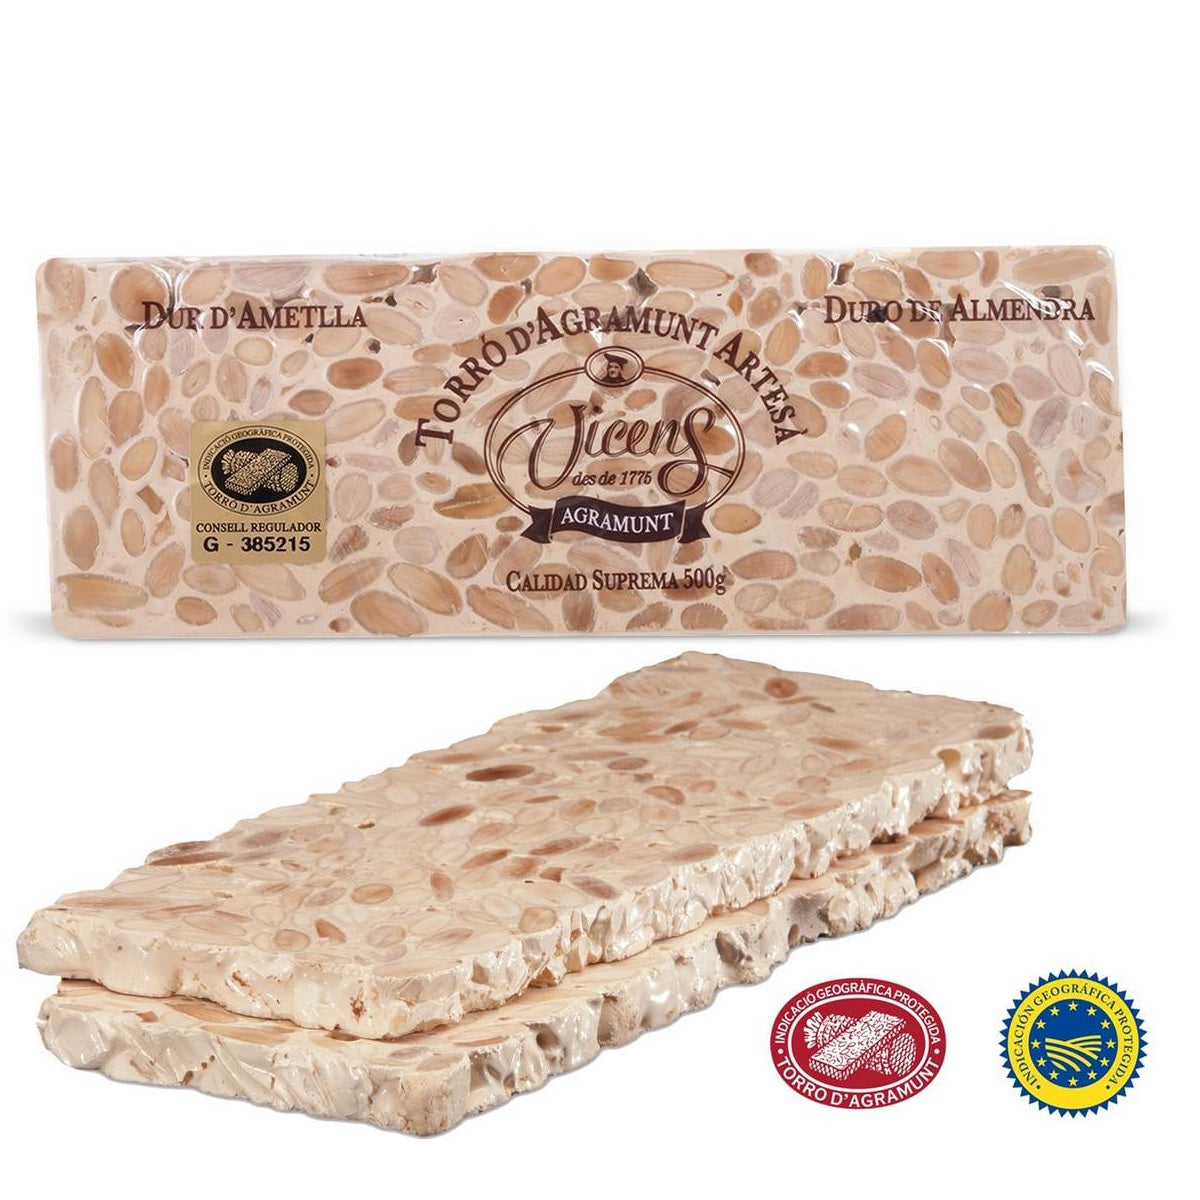 Vicens Hard Almond Nougat - Turrón Candy 200 gr. - The HiO Life